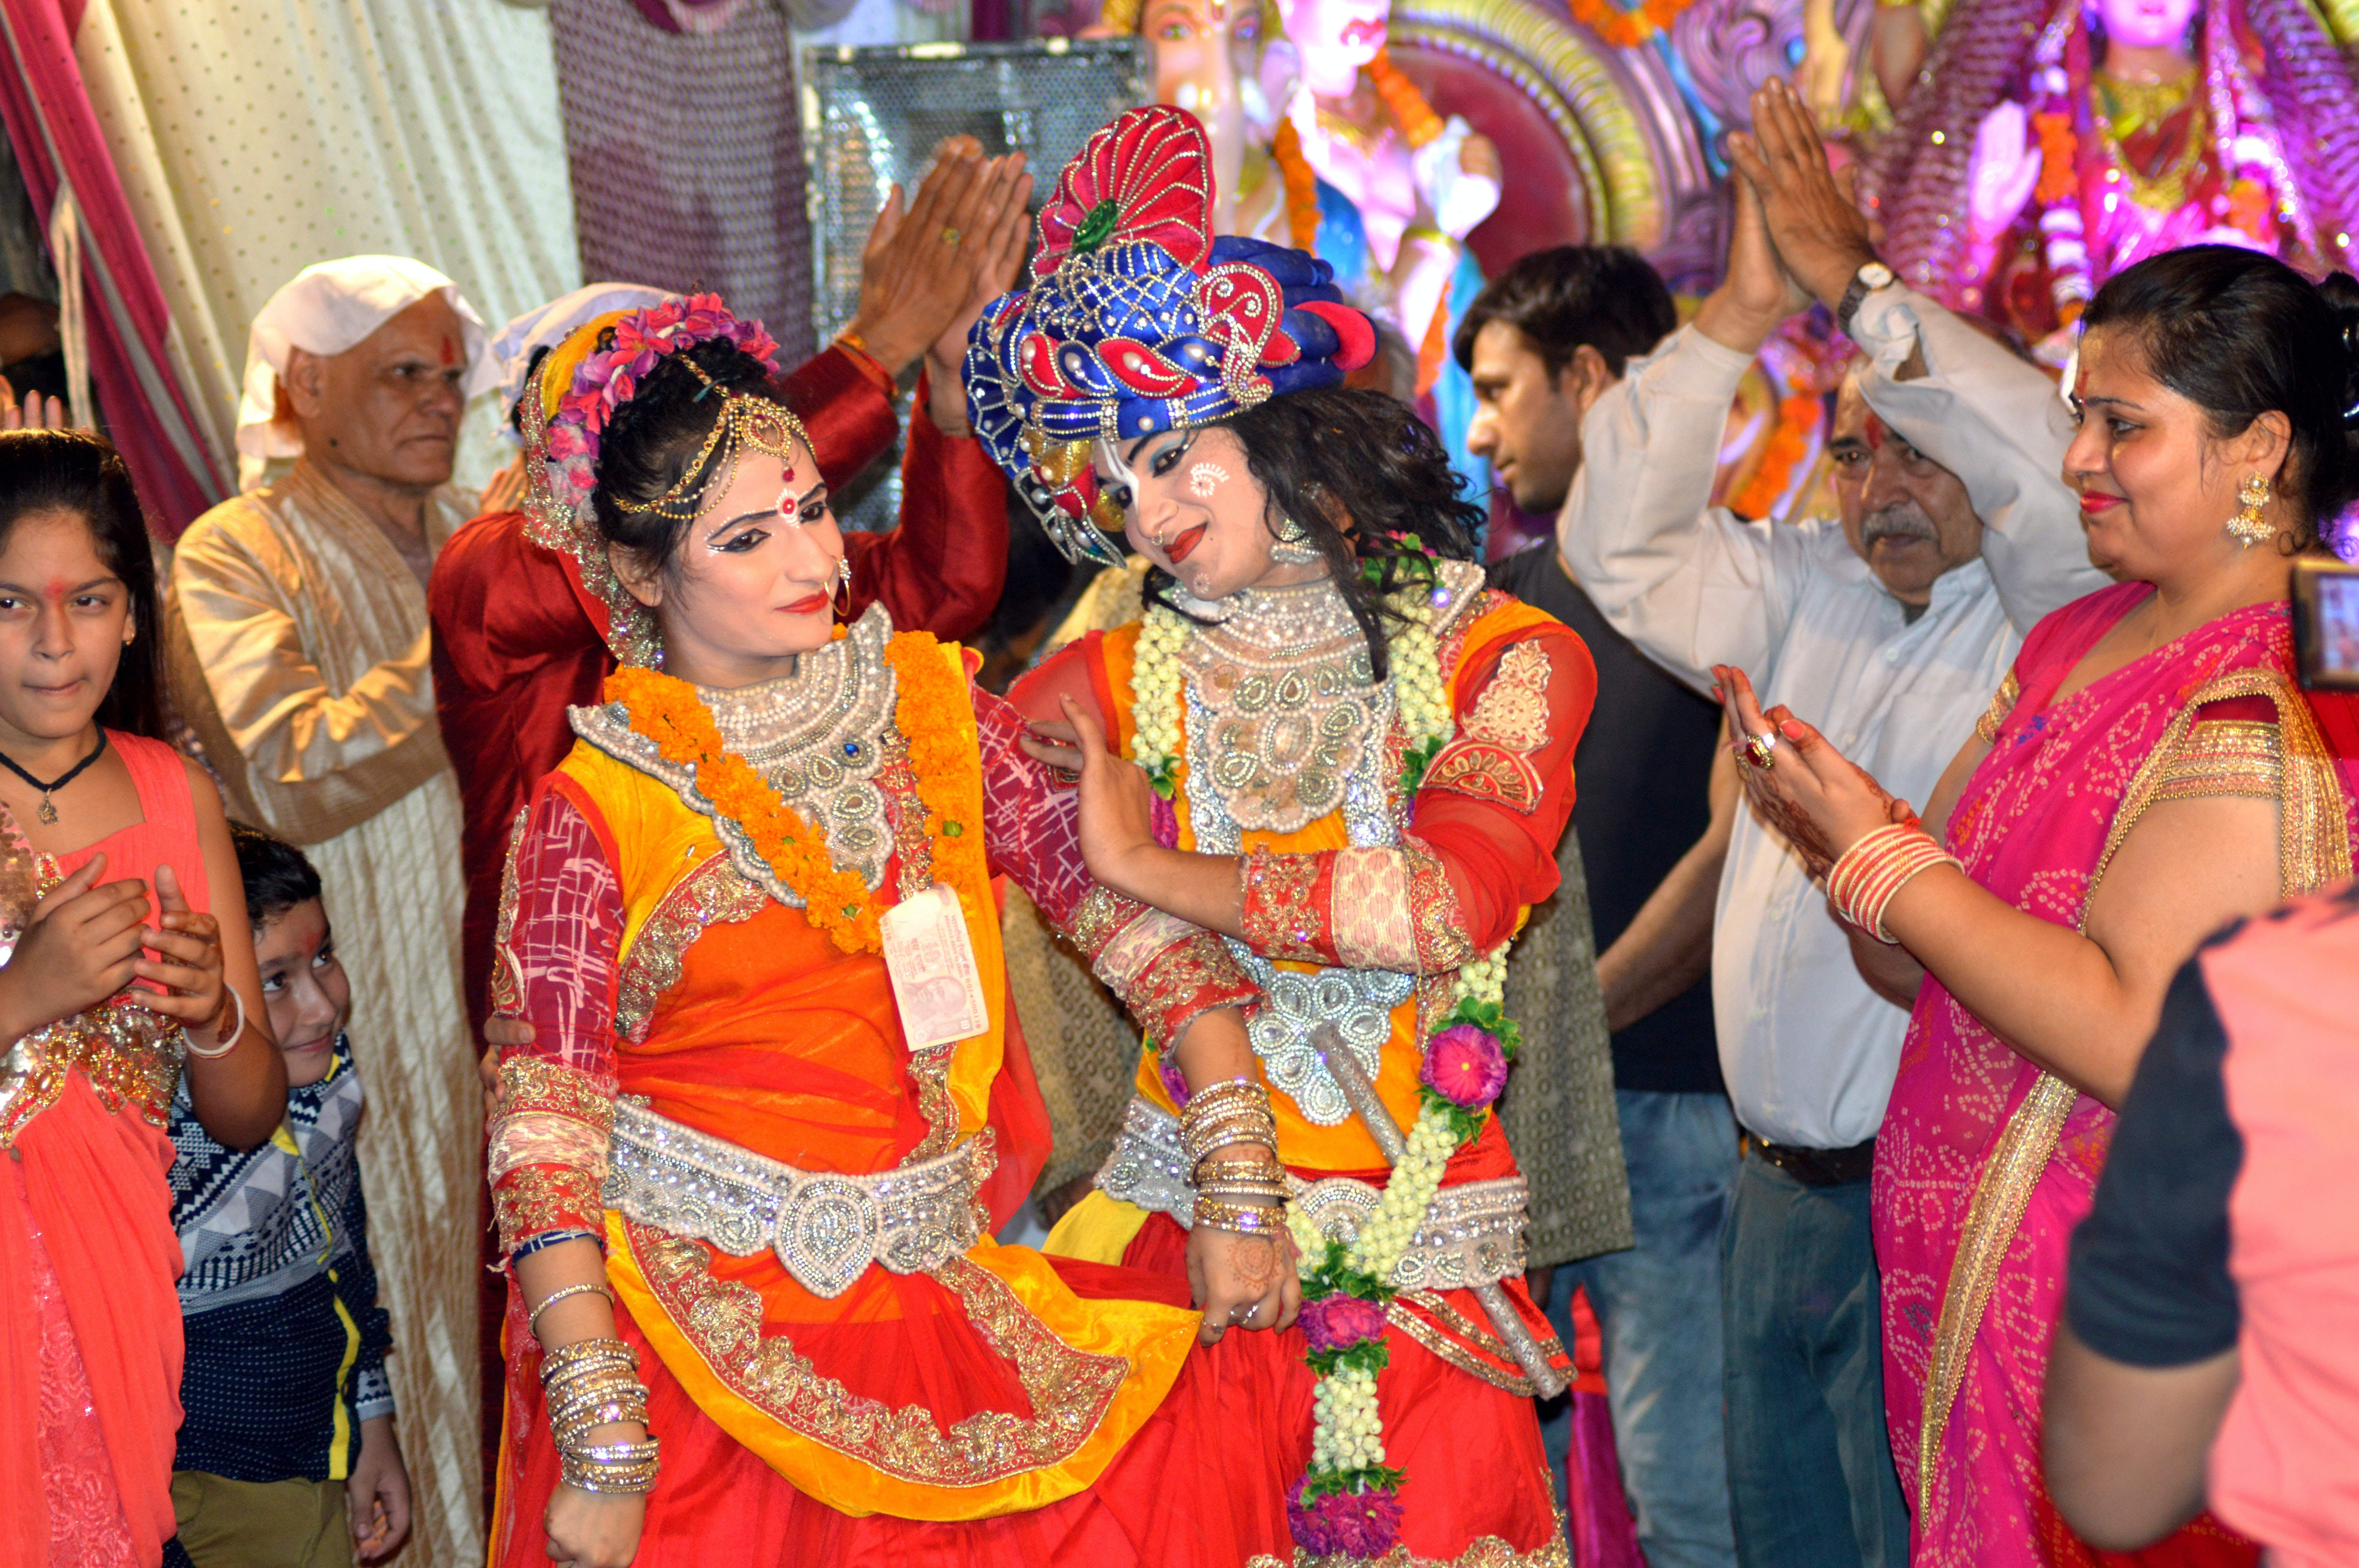 pexels photo 735011.jpeg?cs=srgb&dl=lord krishna radha krishna radhe 735011